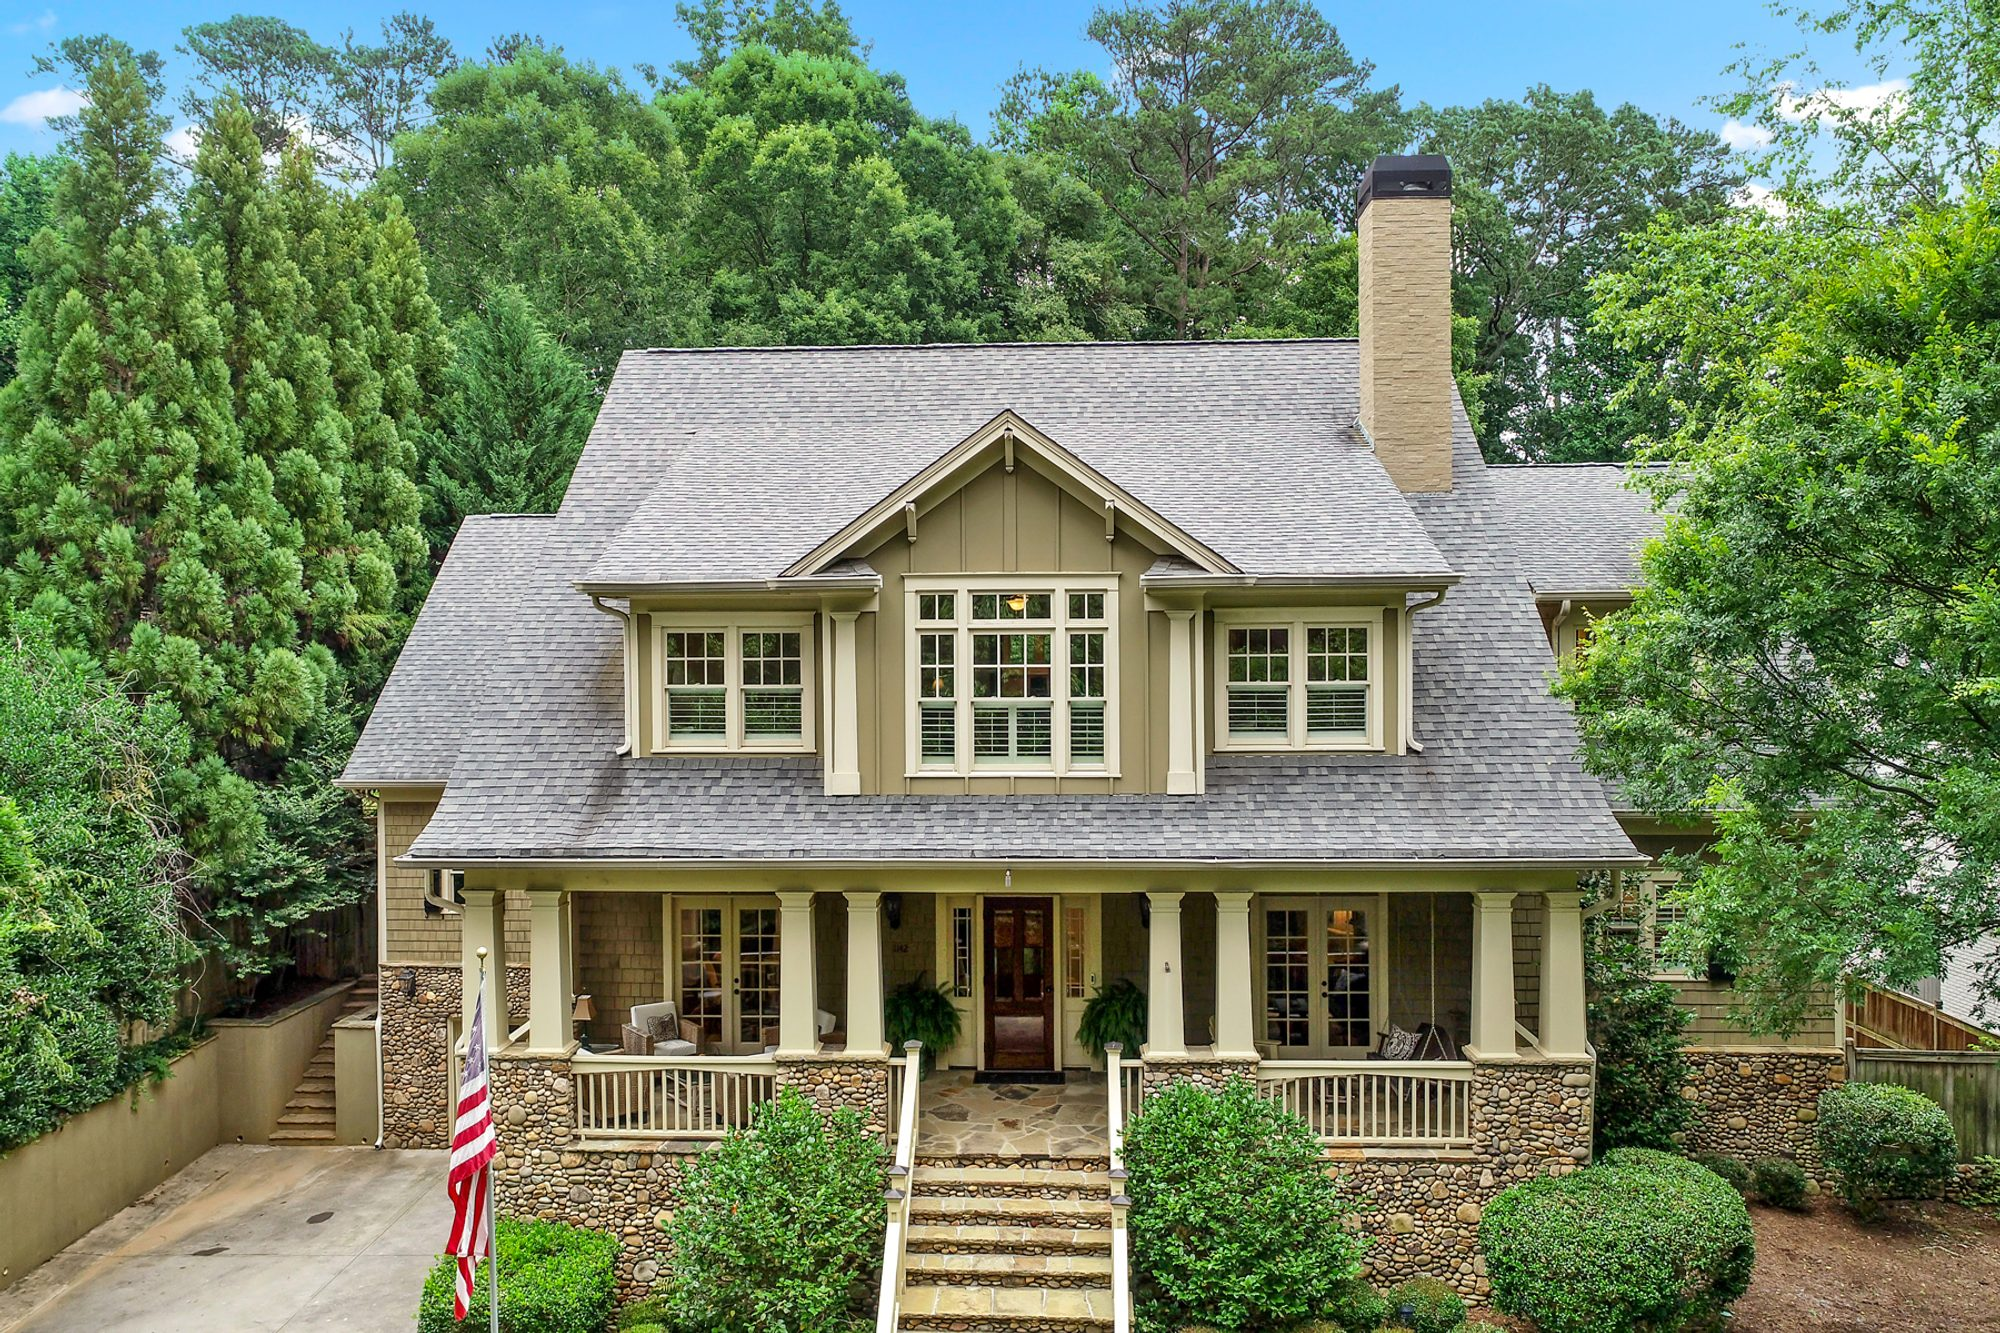 pale olive house color with cream colored trim and columns with a medium brown stained wood front door.